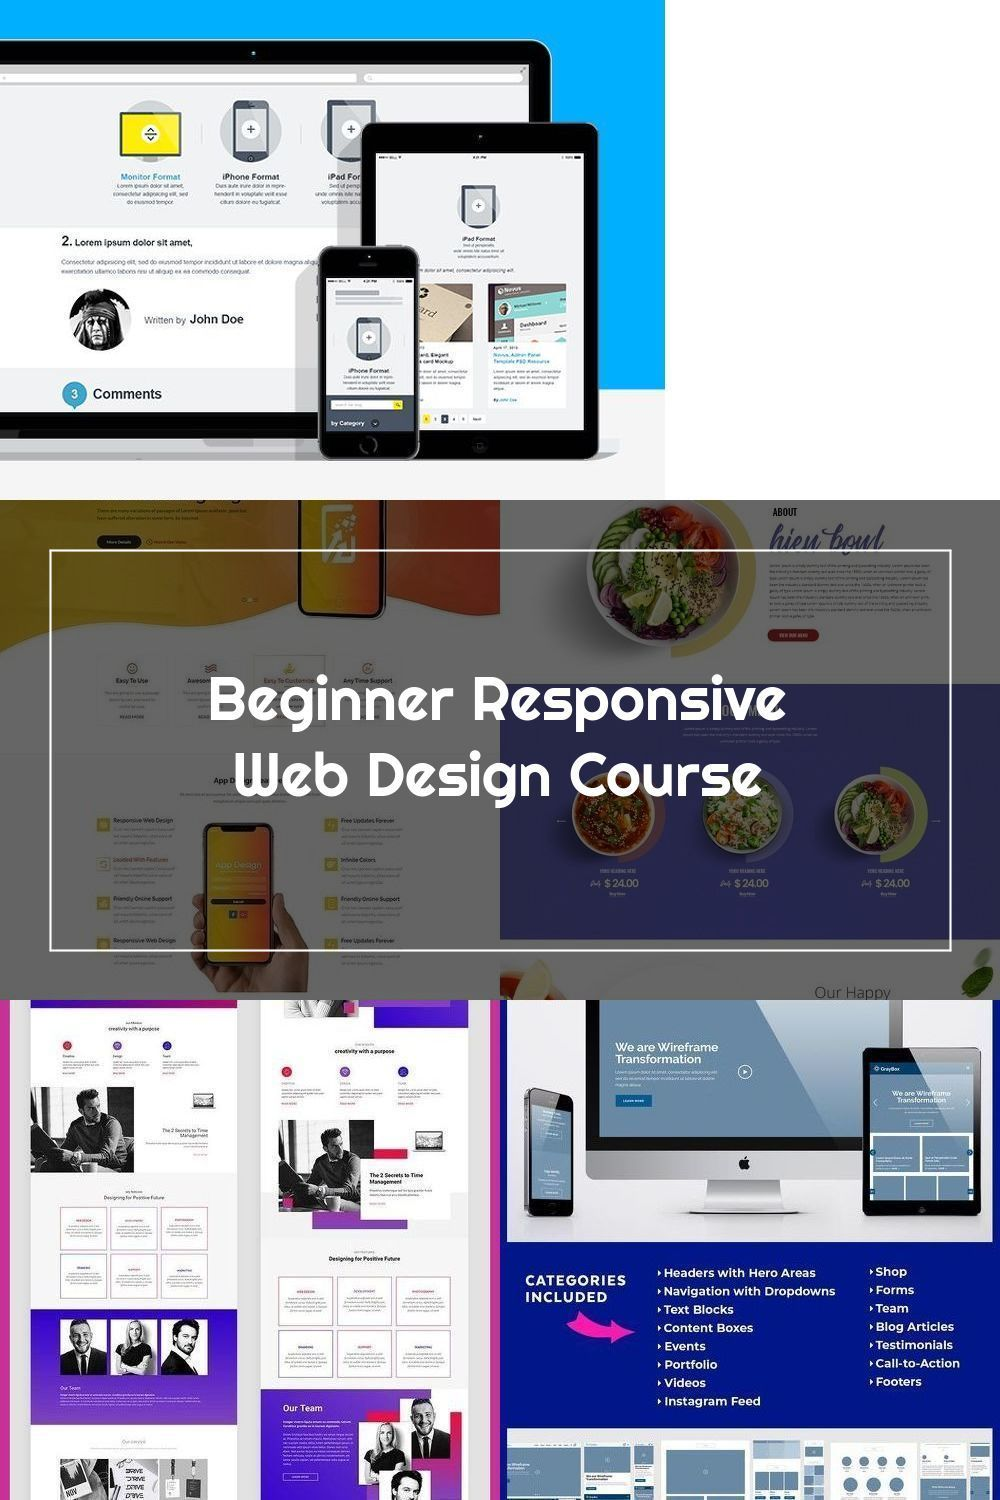 Introductory Responsive Web Development Course Complete Projects To Learn Html5 Css3 And In 2020 Web Development Course Responsive Web Web Design Course